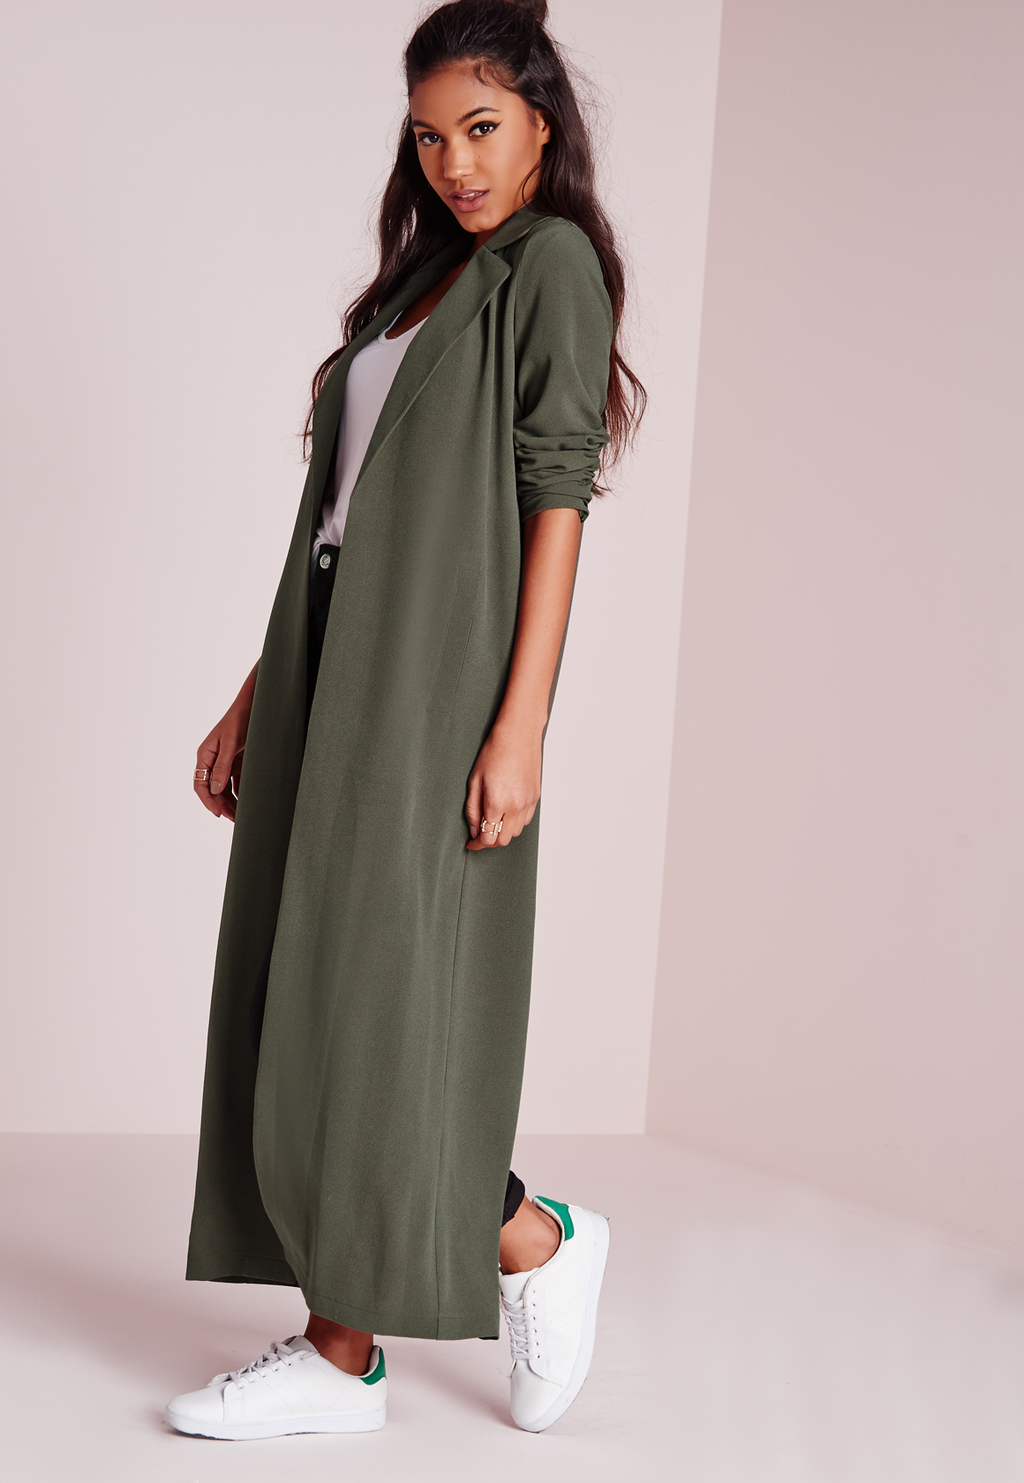 Long Sleeve Maxi Duster Coat Khaki, Beige - pattern: plain; style: duffle coat; collar: standard lapel/rever collar; predominant colour: khaki; secondary colour: khaki; occasions: casual, creative work; length: ankle length; fit: straight cut (boxy); fibres: polyester/polyamide - 100%; sleeve length: long sleeve; sleeve style: standard; collar break: low/open; pattern type: fabric; texture group: woven light midweight; season: s/s 2016; wardrobe: basic